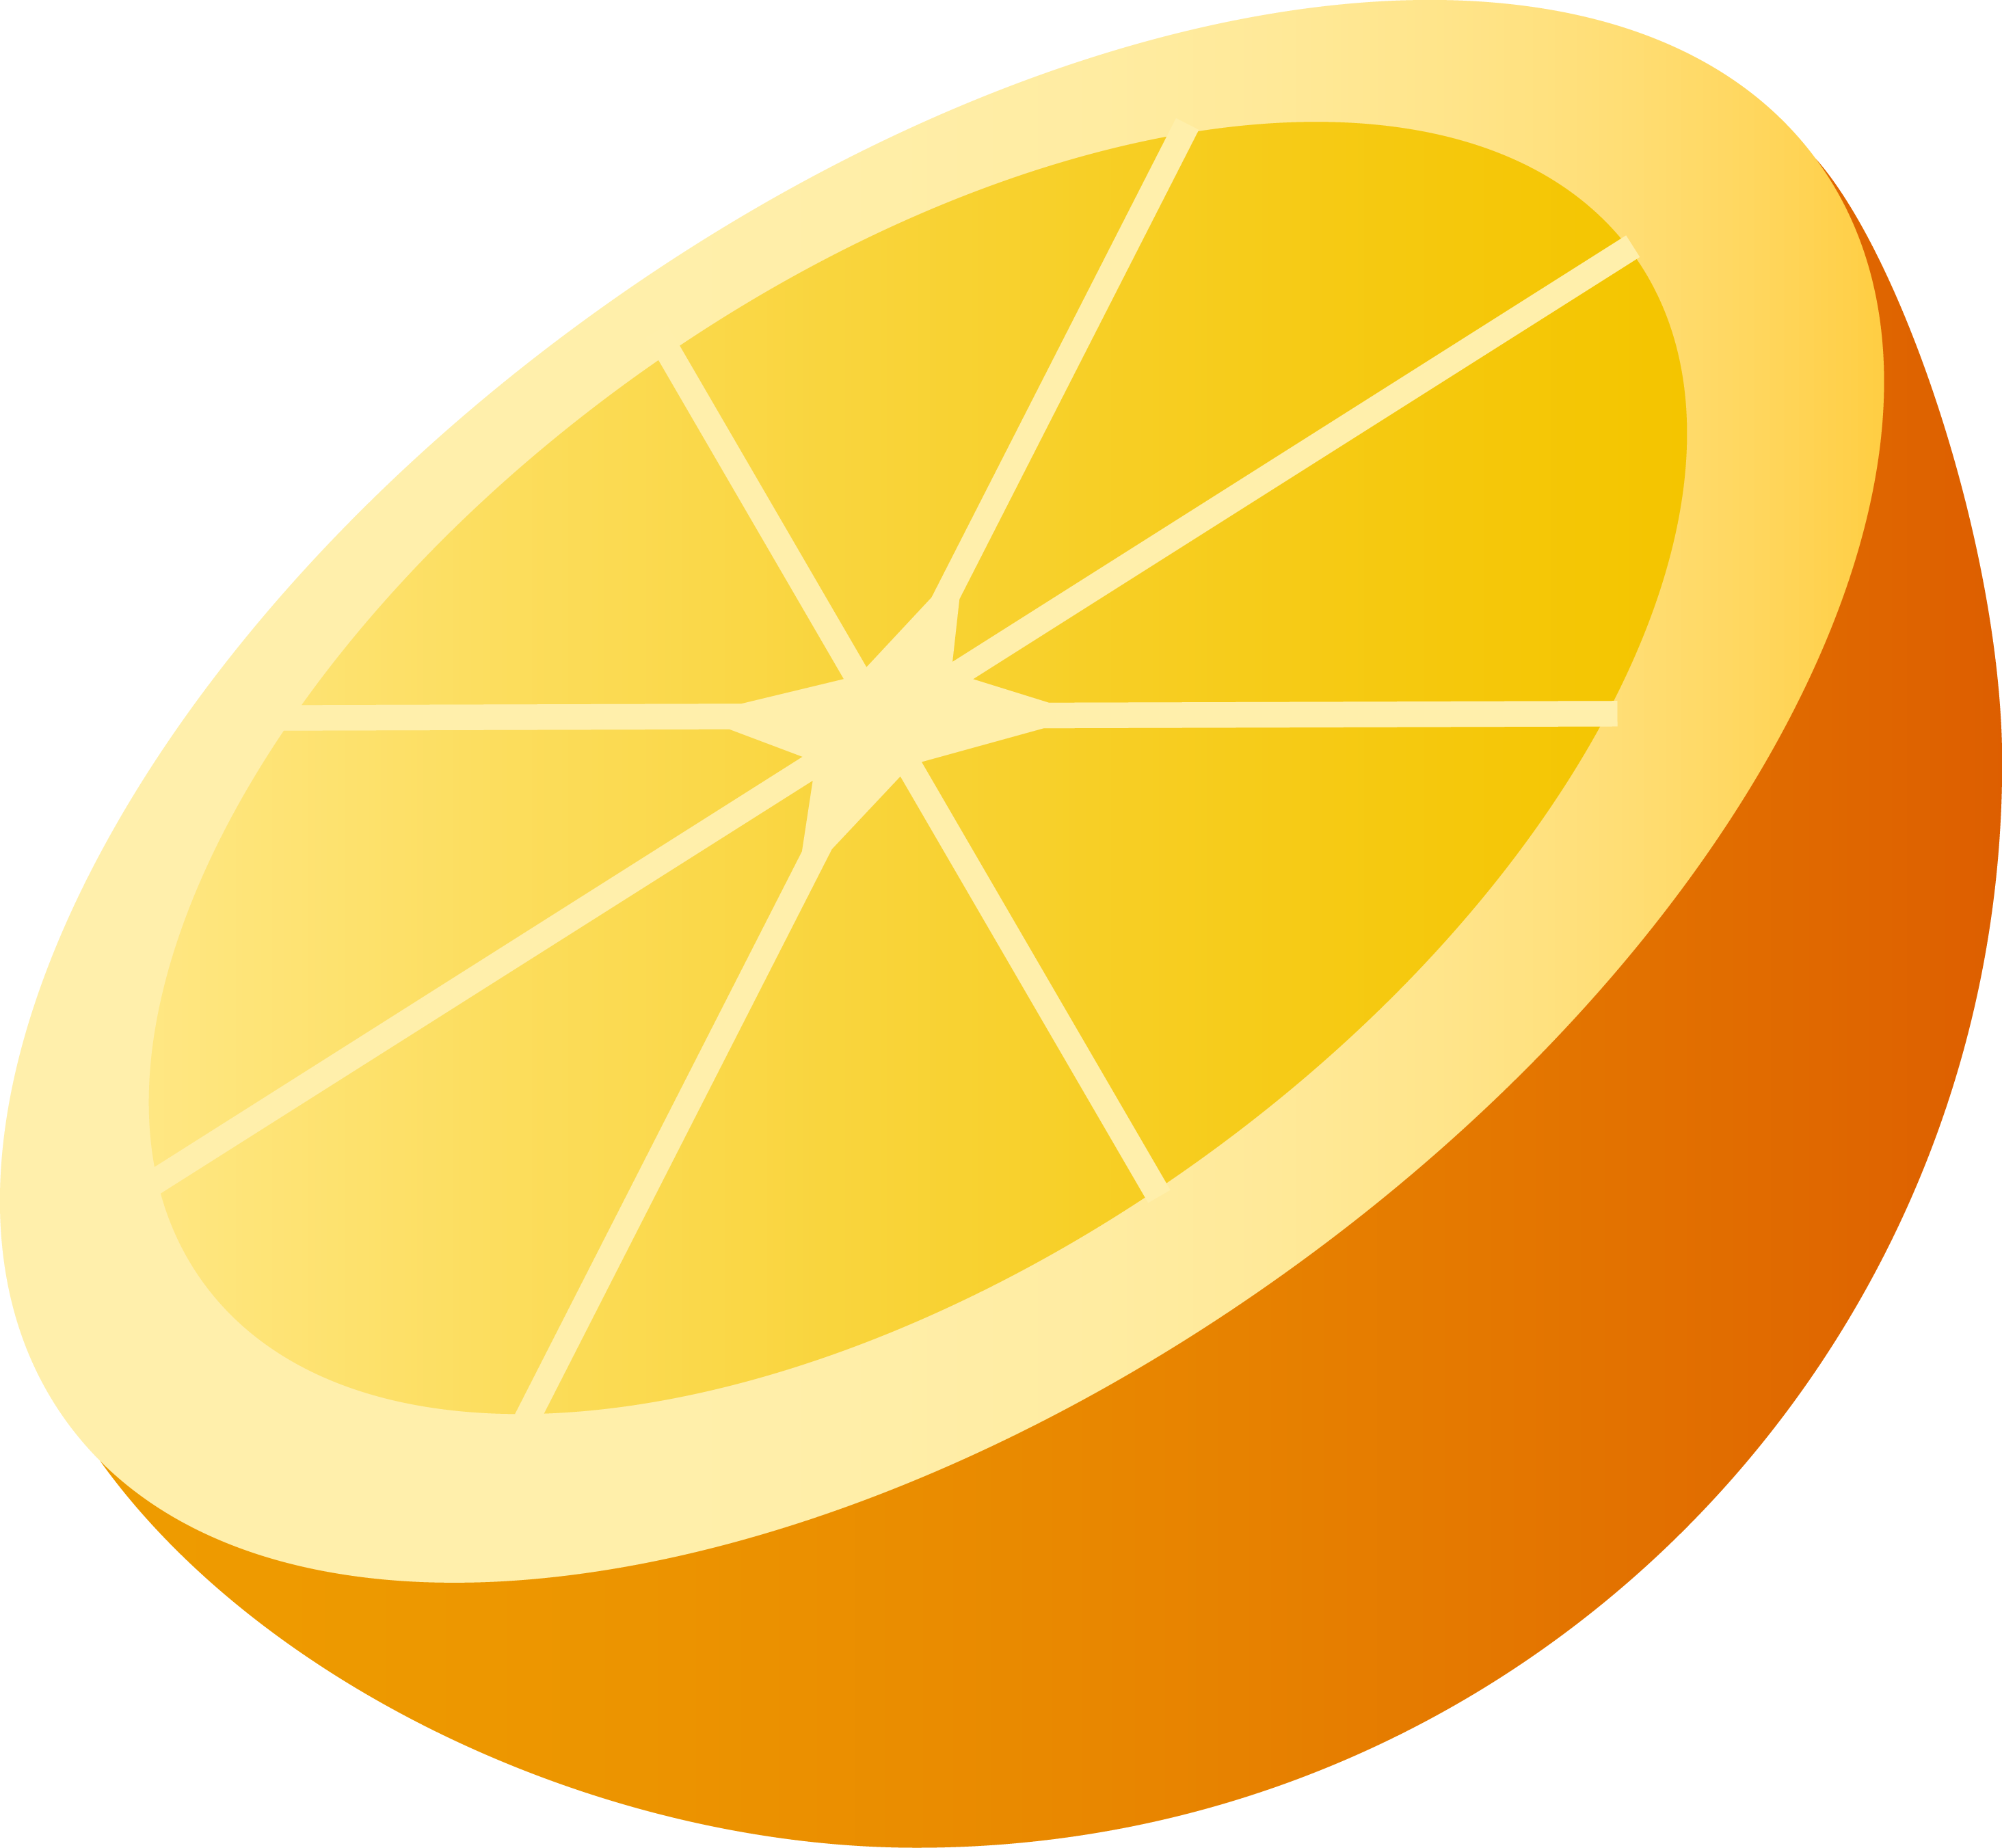 Citrus clipart orange fruit Download free Orange image download